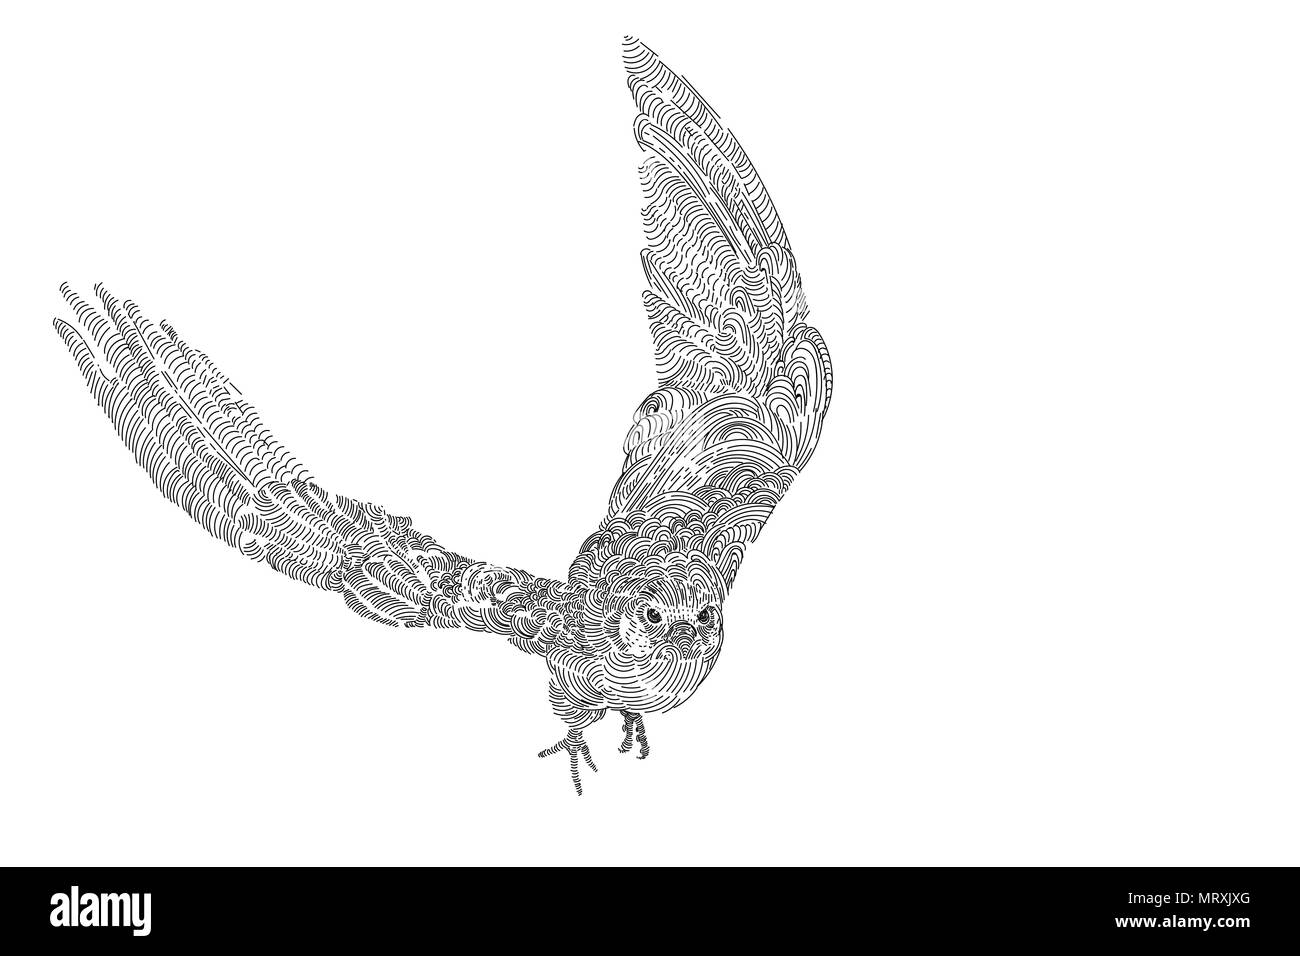 Flying Amur falcon bird isolated on white background, drawing vector illustration - Stock Vector